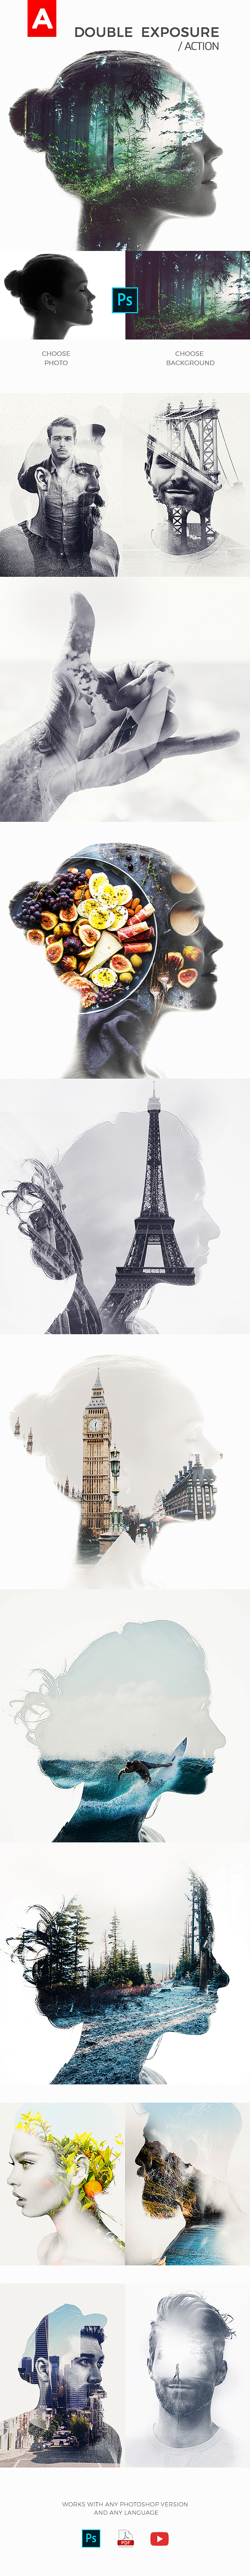 Double Exposure Action - Photo Effects Actions